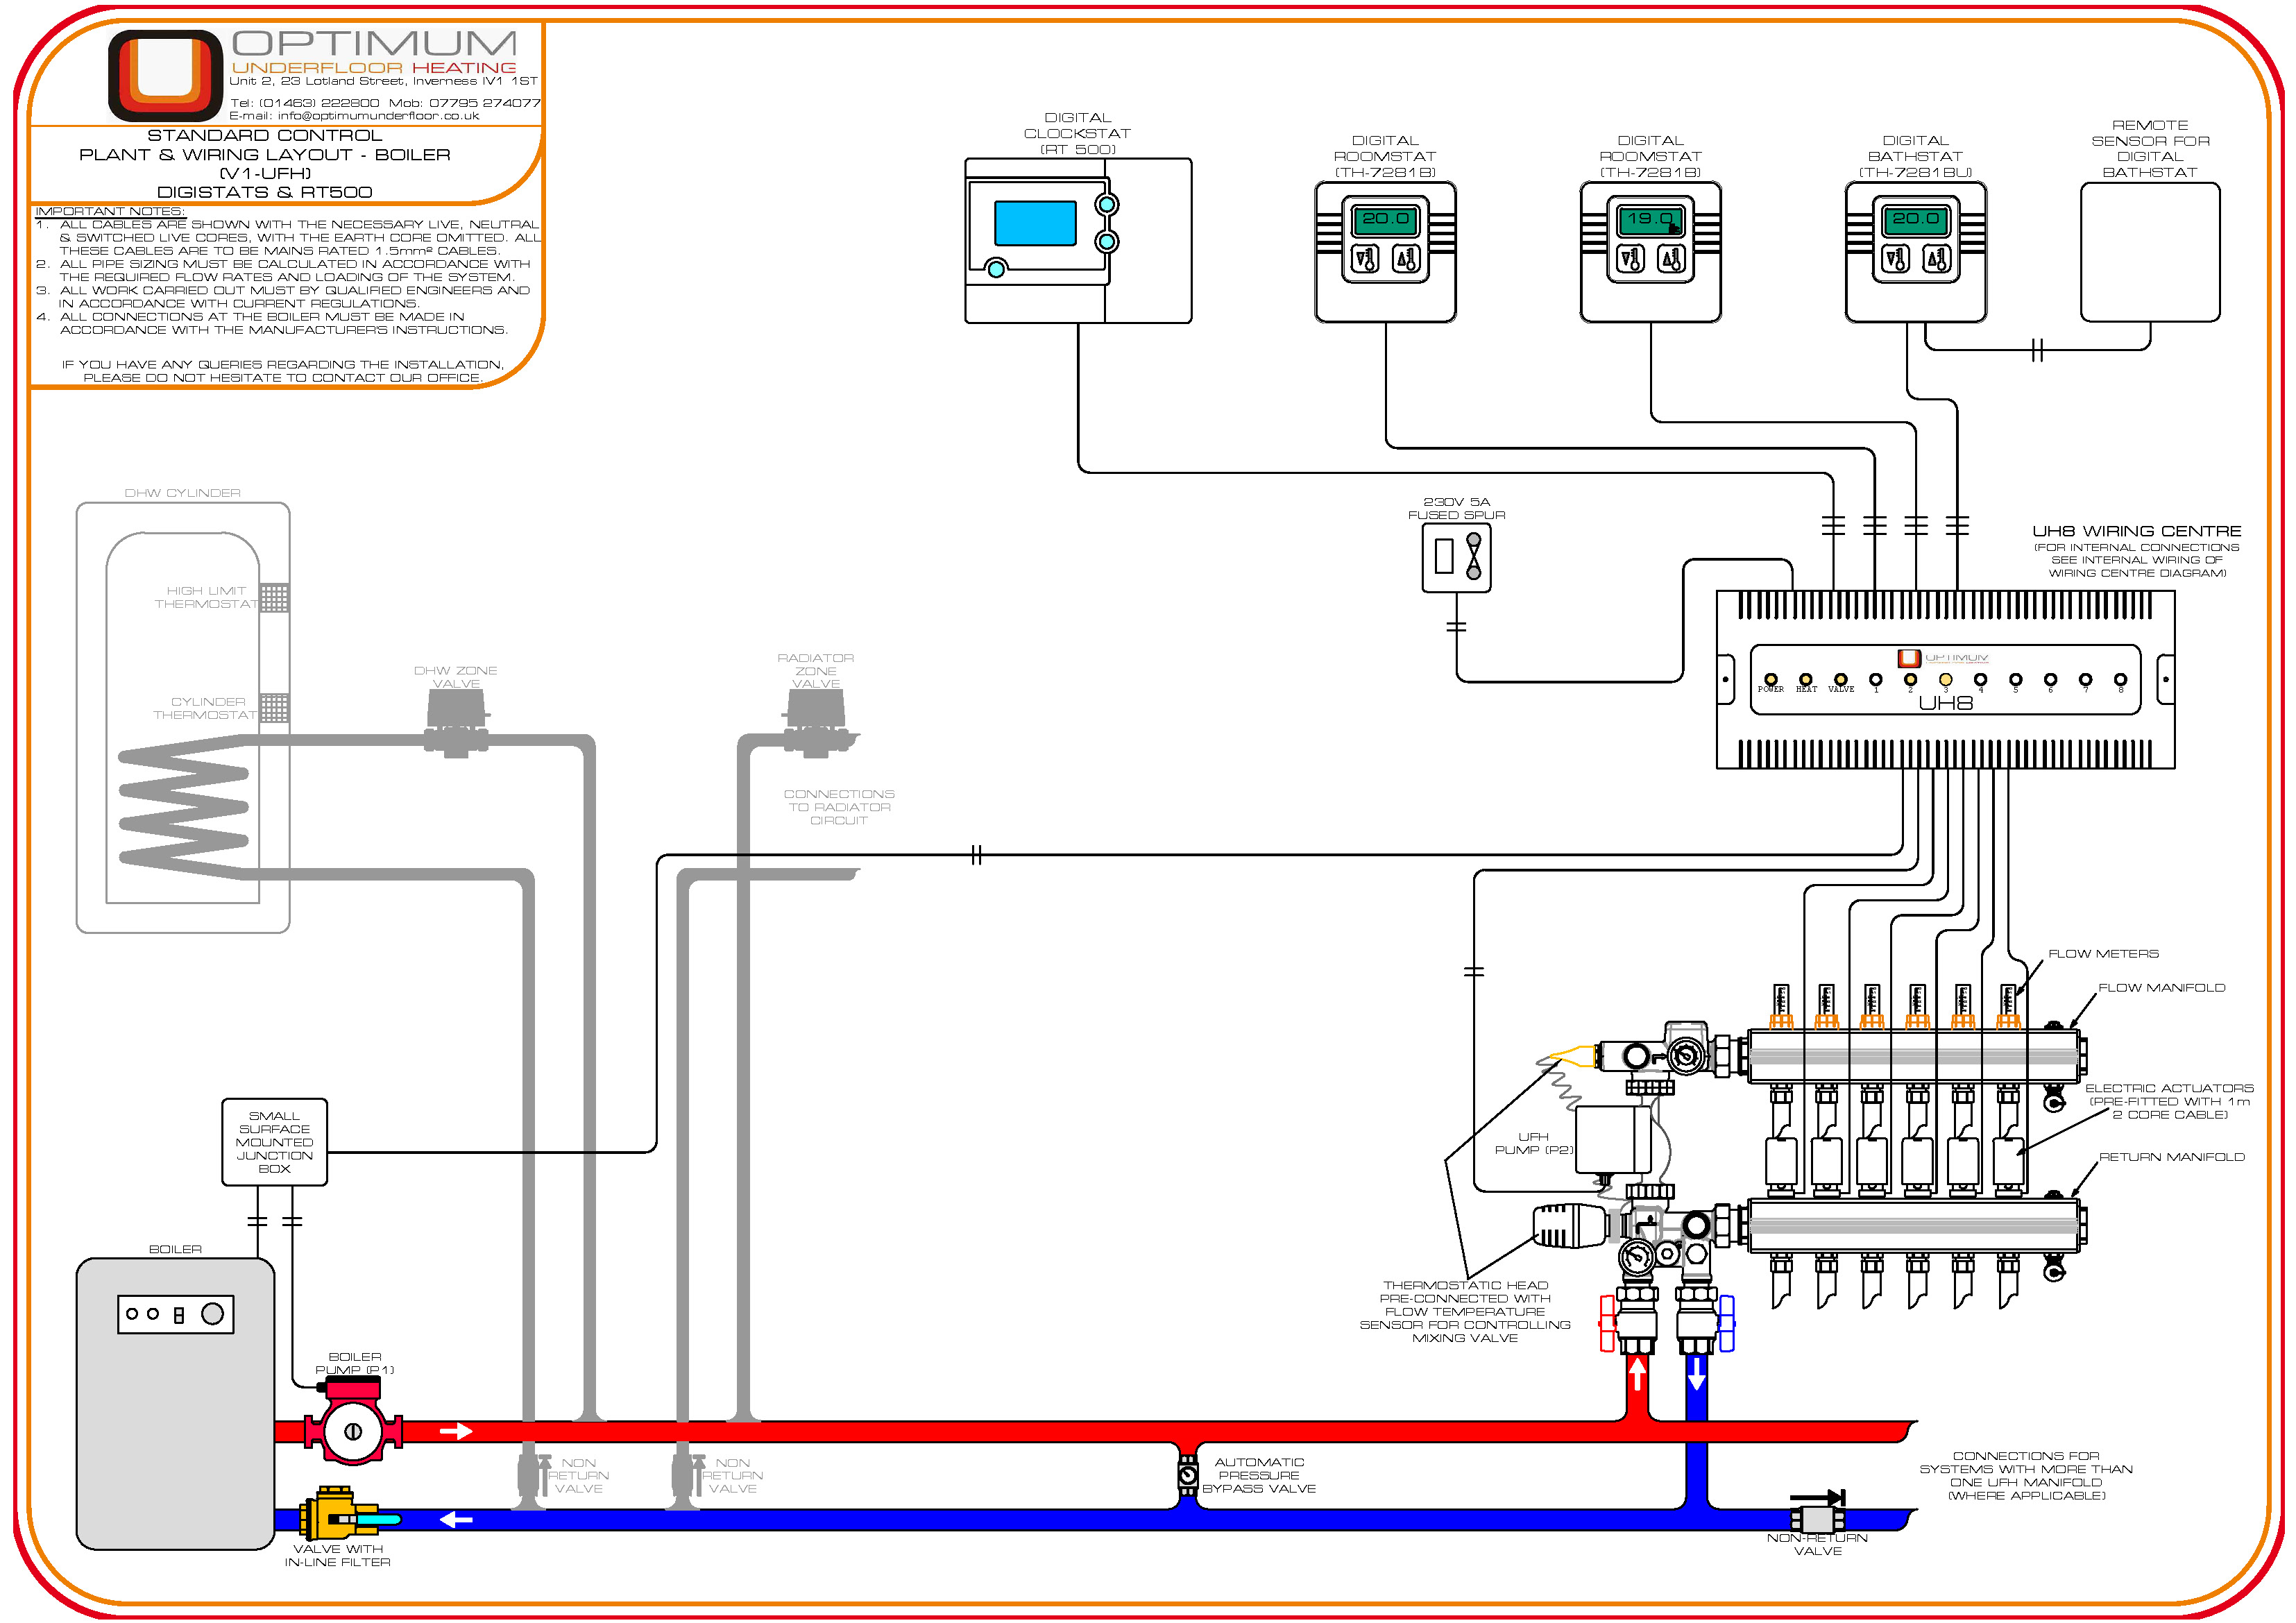 3 phase motor wiring diagrams 120 control diagrams standard control thermostats | optimum underfloor heating